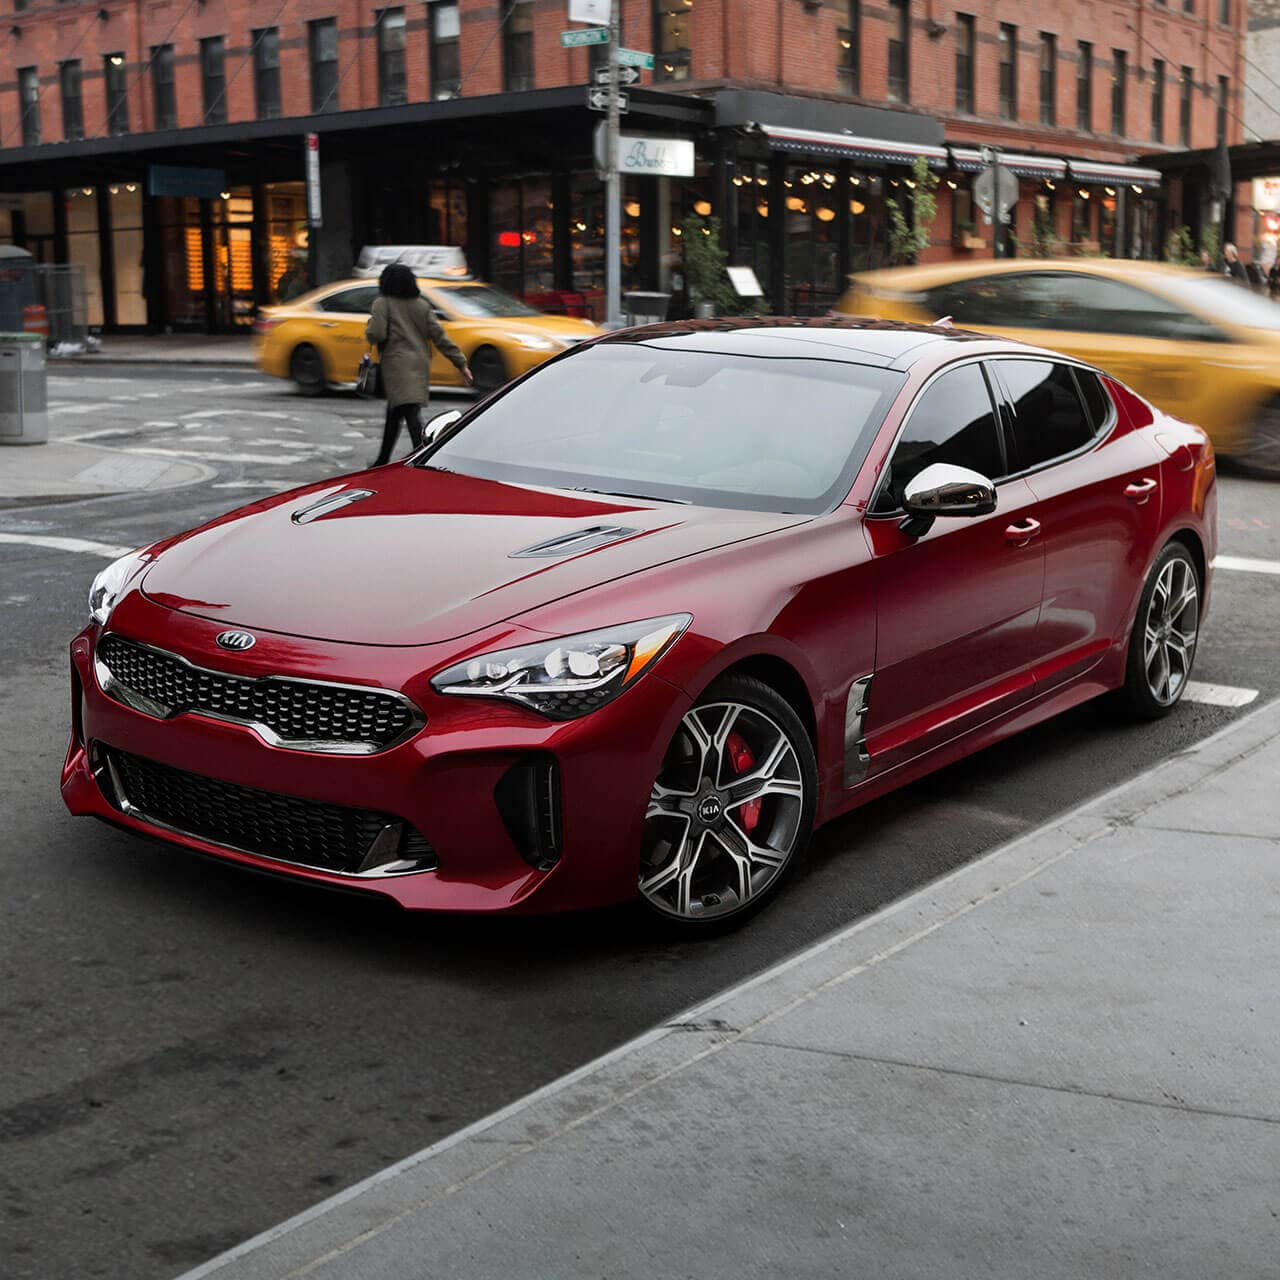 2018 Kia Stinger parked on city street